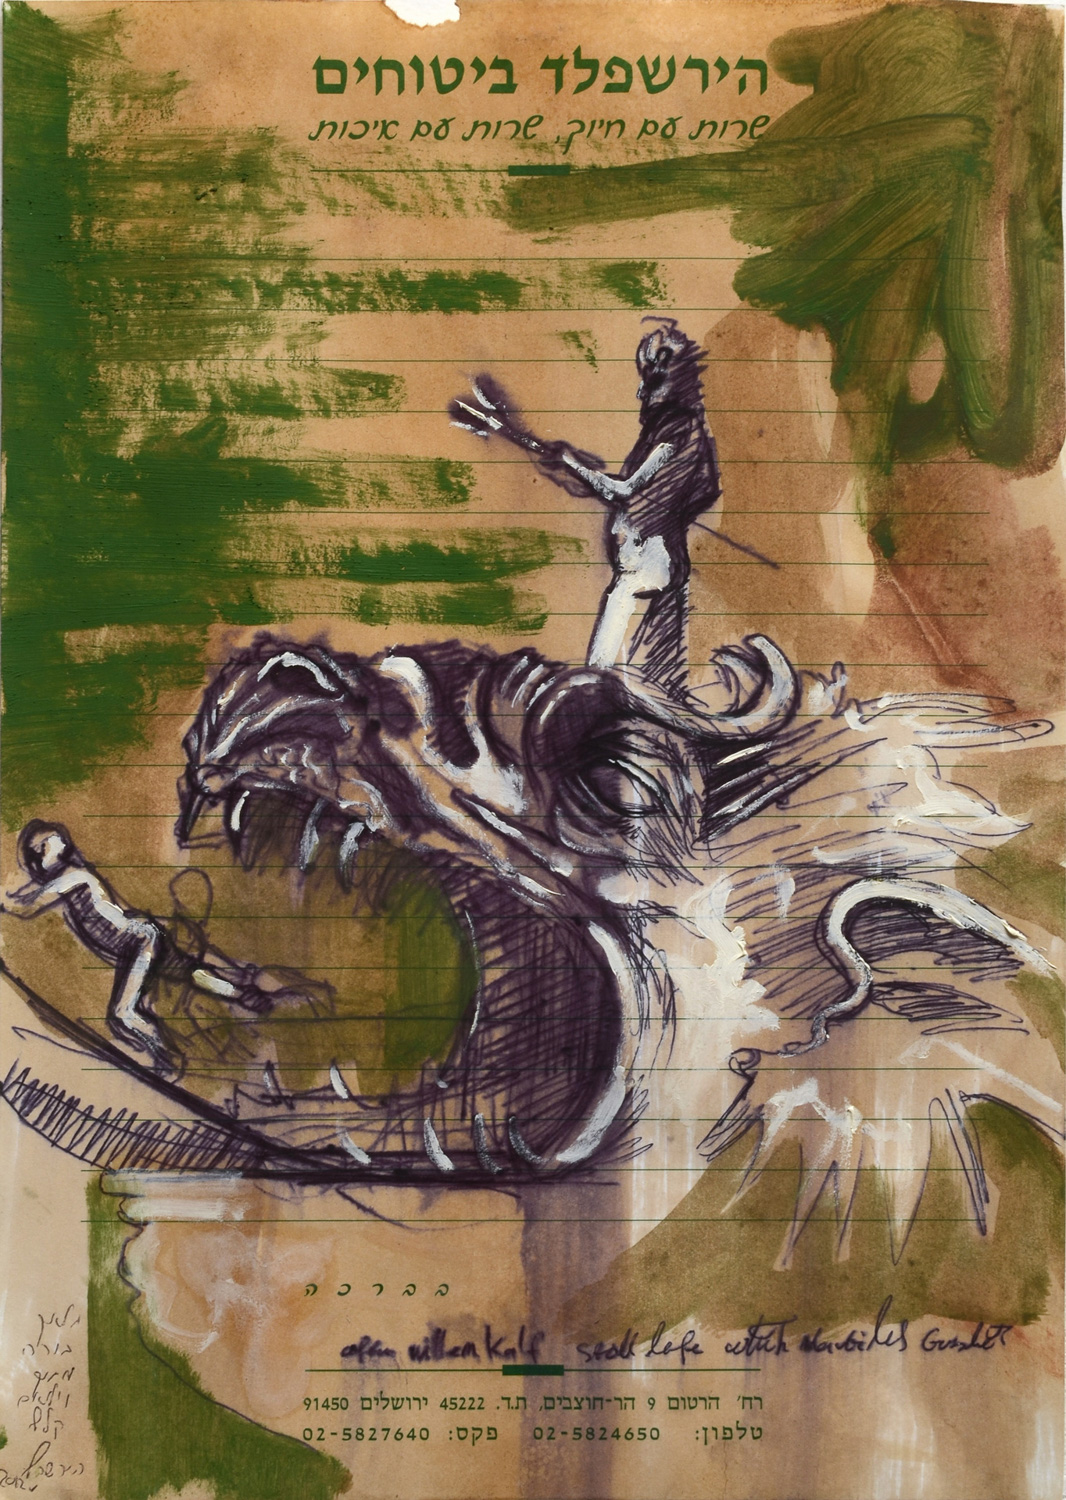 Prometheus, Mixed media on paper, 21x29 cm, 2012